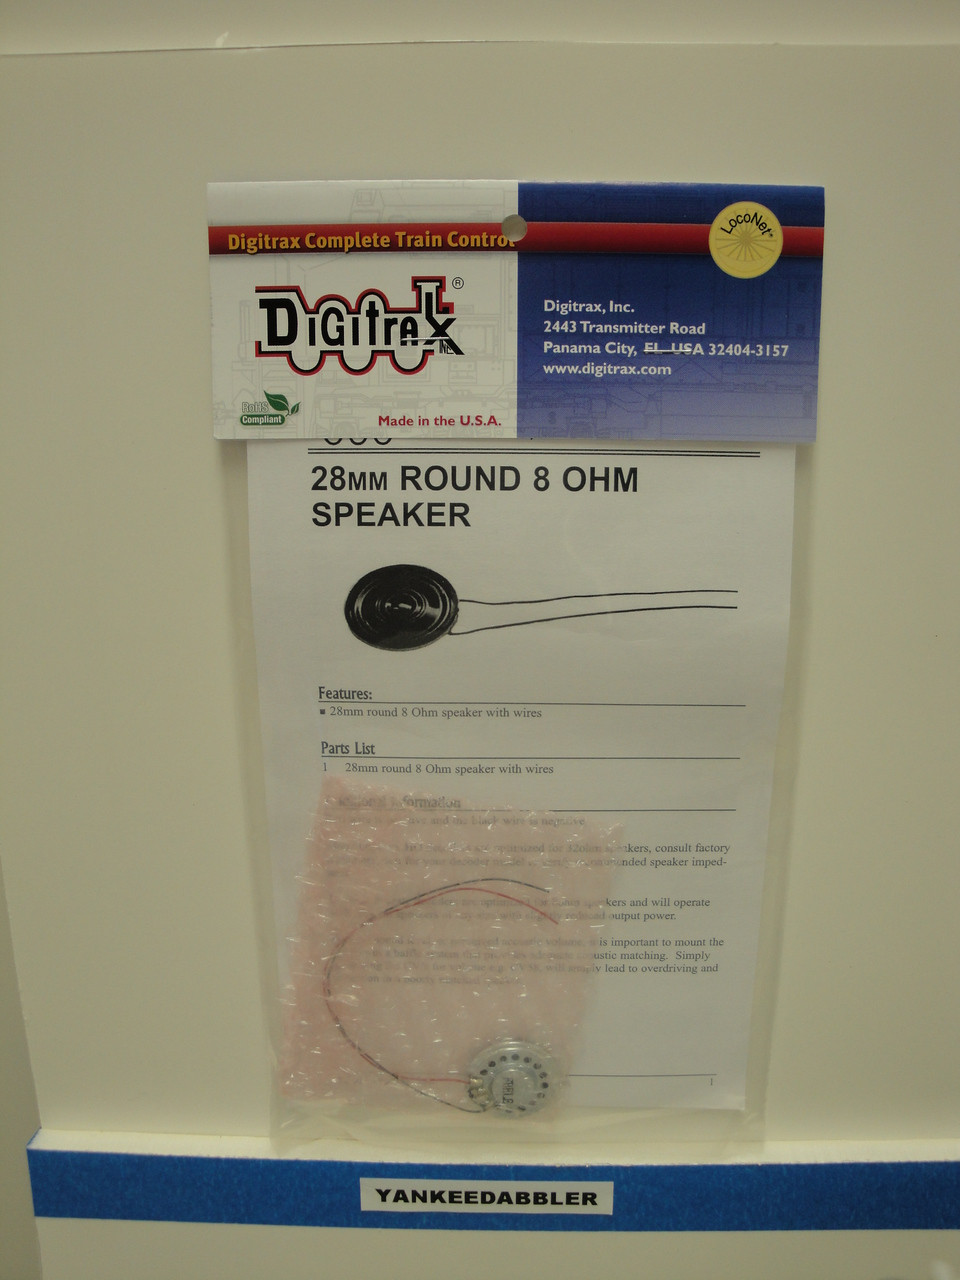 hight resolution of sp28288 digitrax speaker w wire round 8ohm scale all part